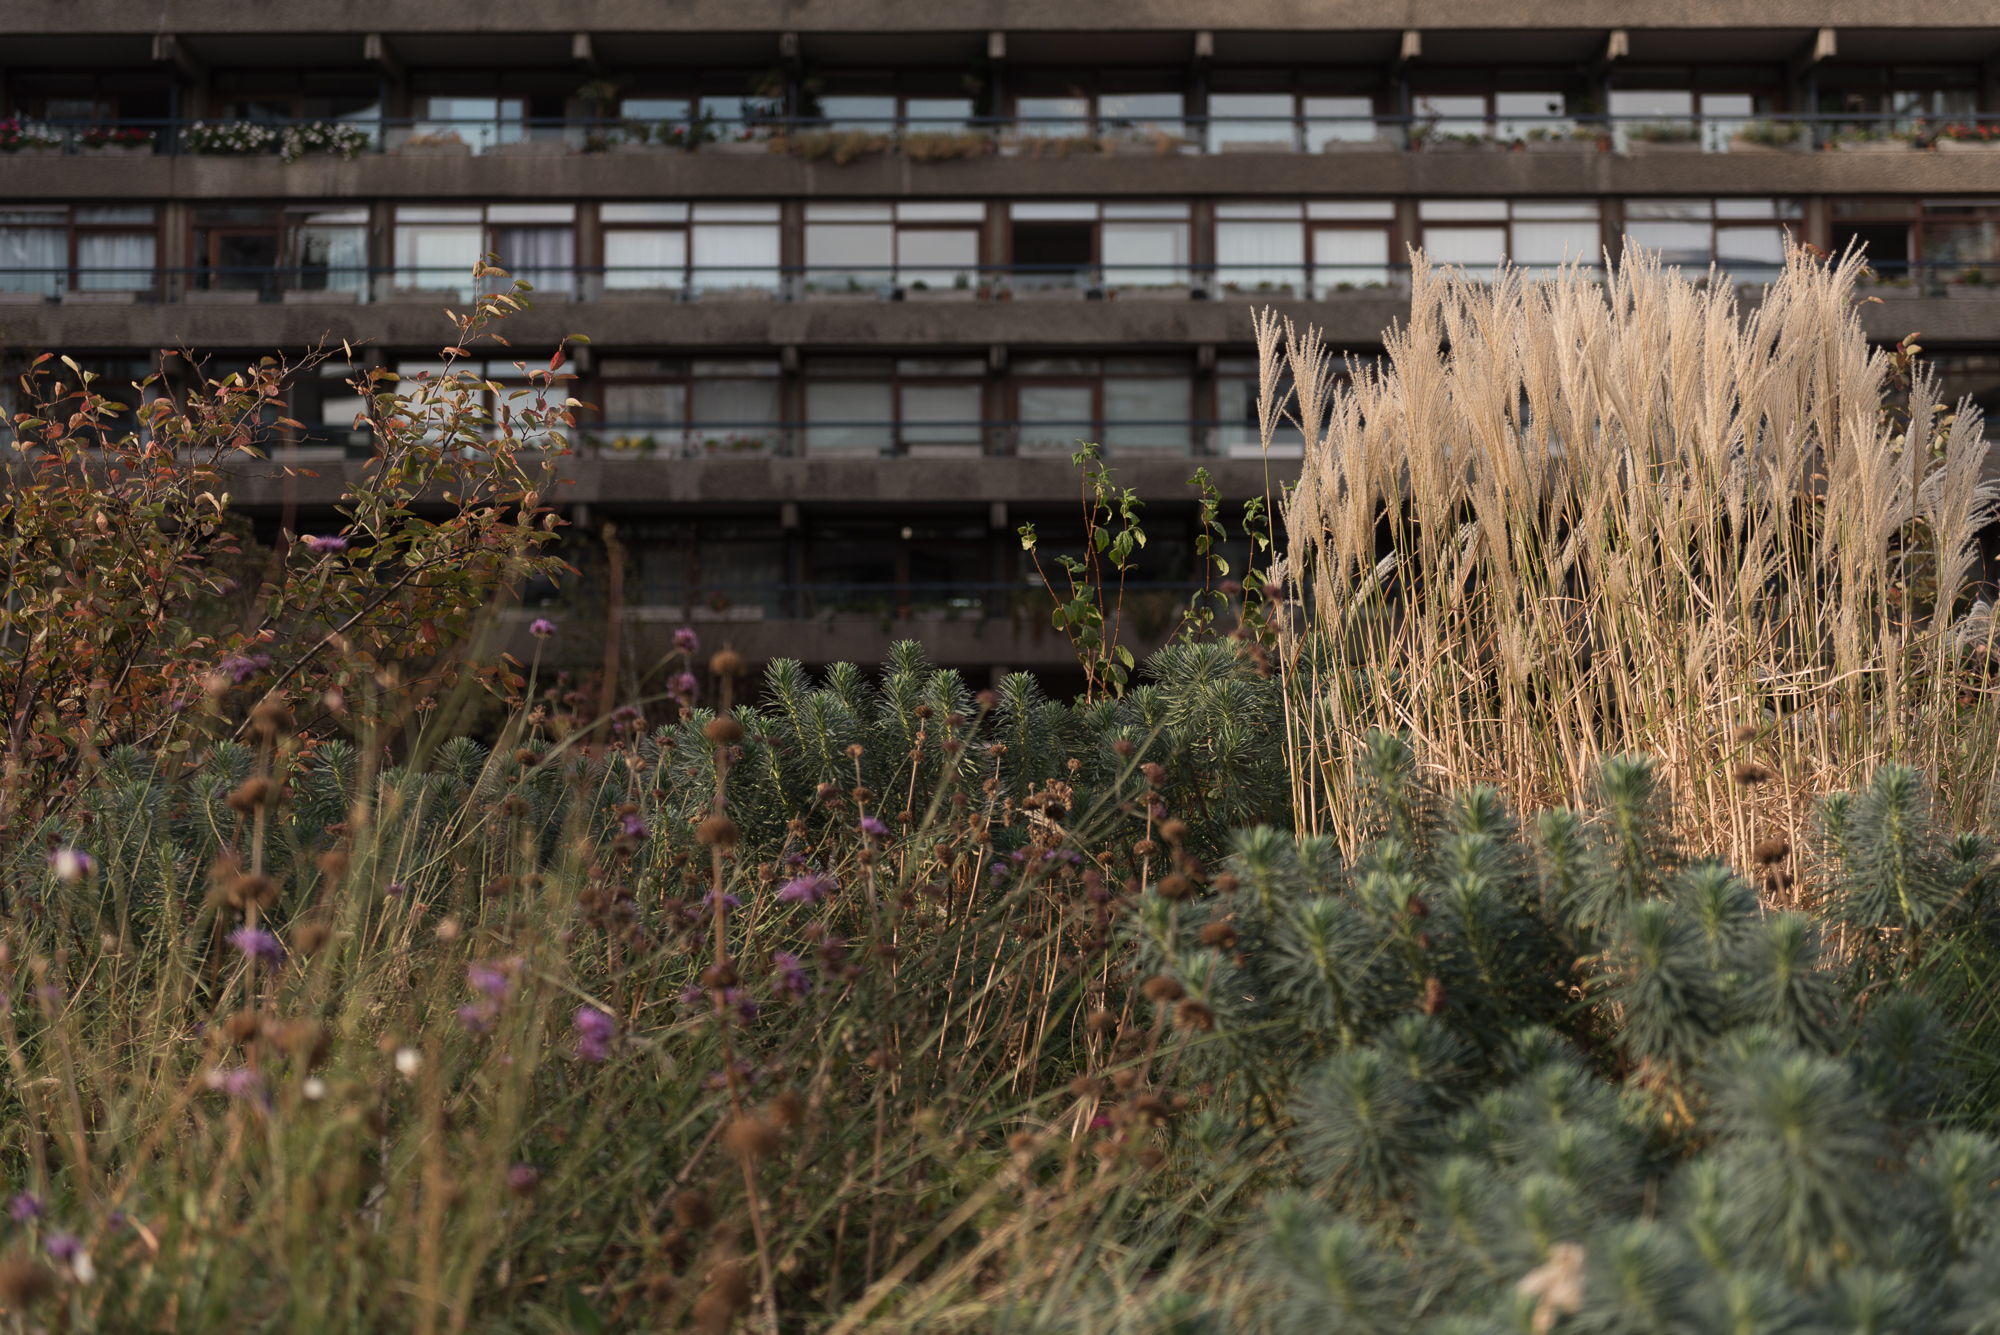 An image with ferns and grasses in the foreground and a tower block in the background.